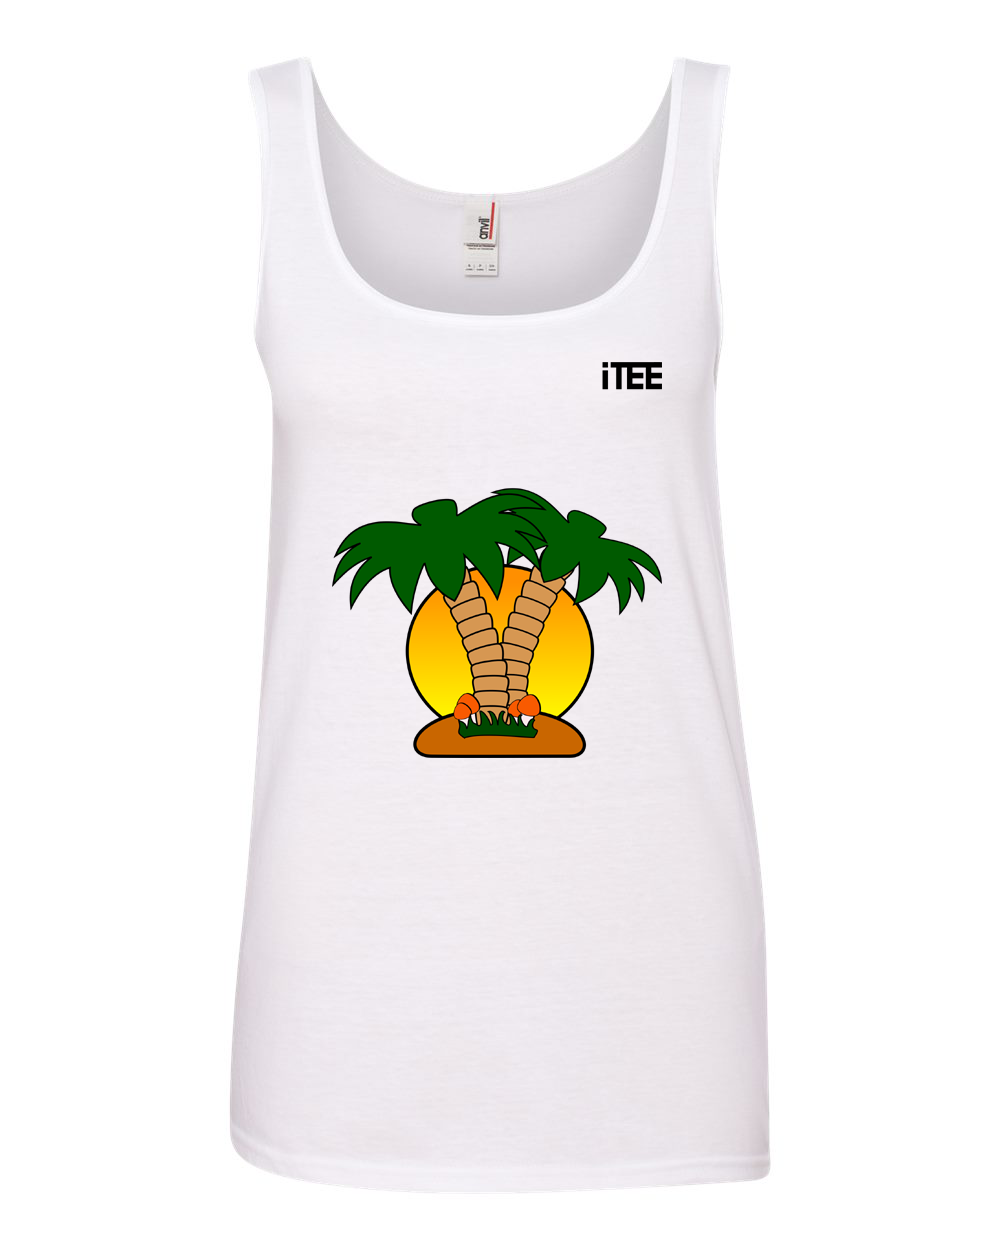 tropical-island-ladies-missy-fit-ring-spun-tank-top-by-itee-com